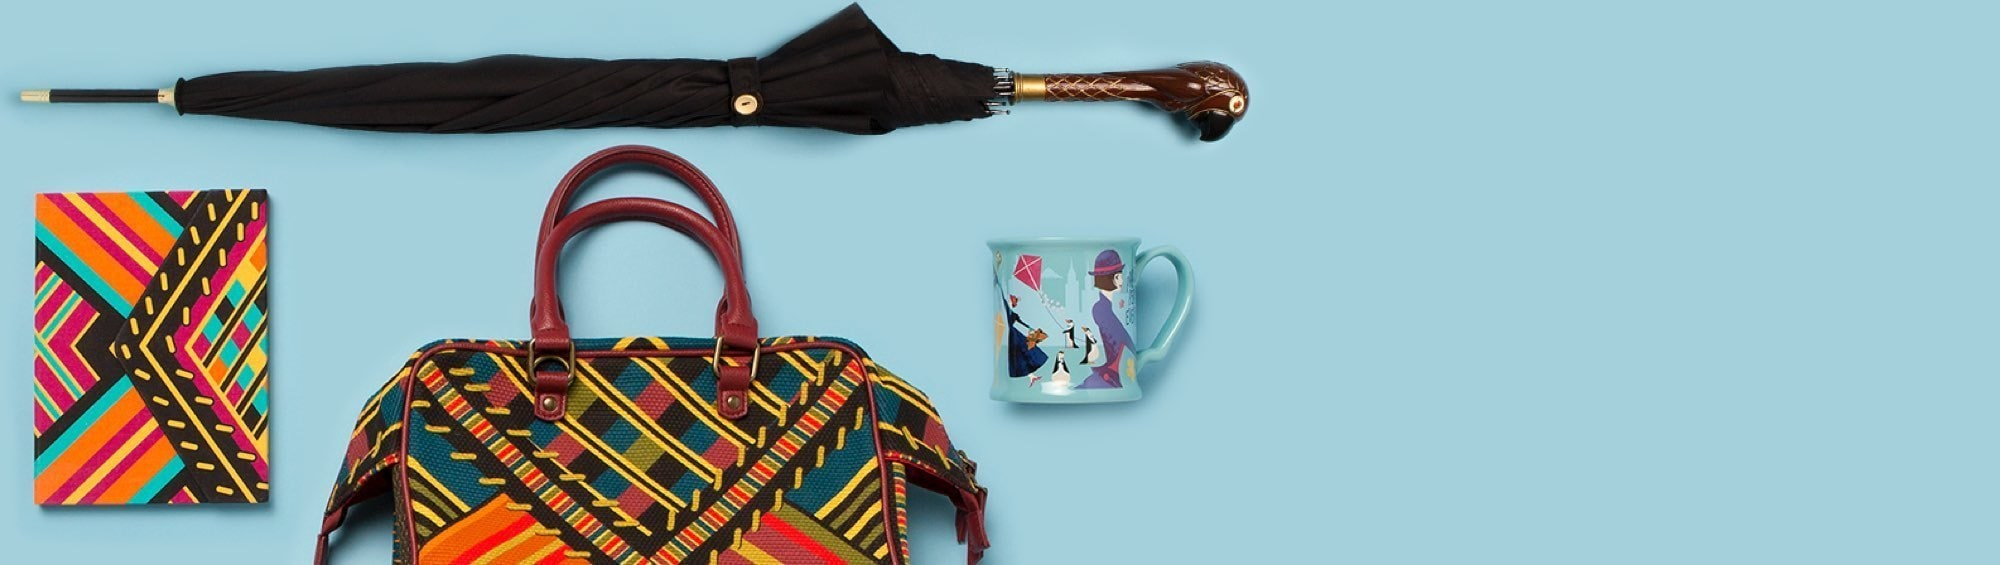 Il Ritorno di Mary Poppins | Featured Product